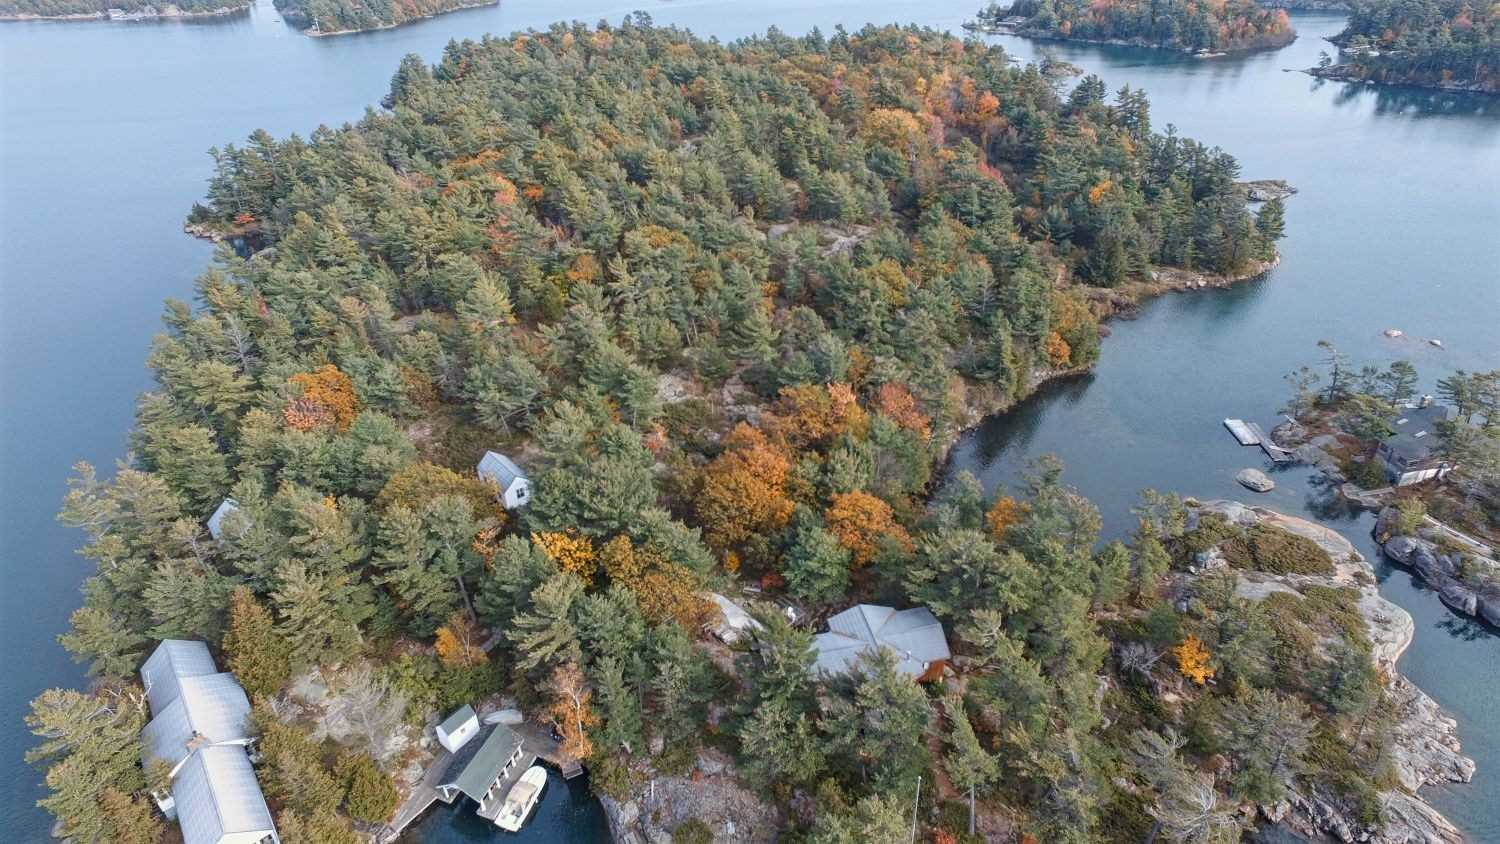 Just In Time For Summer!Rare Opportunity To Own 4 Cottage Family Compound On Richard's Island &Short Distance From Open Waters Of Georgian Bay (Pointe-Au-Baril Community).Sits On 11.5 Acres W/Magnificent Views & Seemingly Endless Shorelines.The Main Cabin Fts:High Ceilings, Lrg Lr W/Grand Stone Fp, Huge Kitchen, Mstr W/Ensuite +2 Bdrms, Fam Rm O/L Water.Viceroy Cottage W/Full Kit, Liv Rm W/Fp & W/O To Lrg Deck,2 Good Size Bdrms,Full Bth.2 Additional Cottages